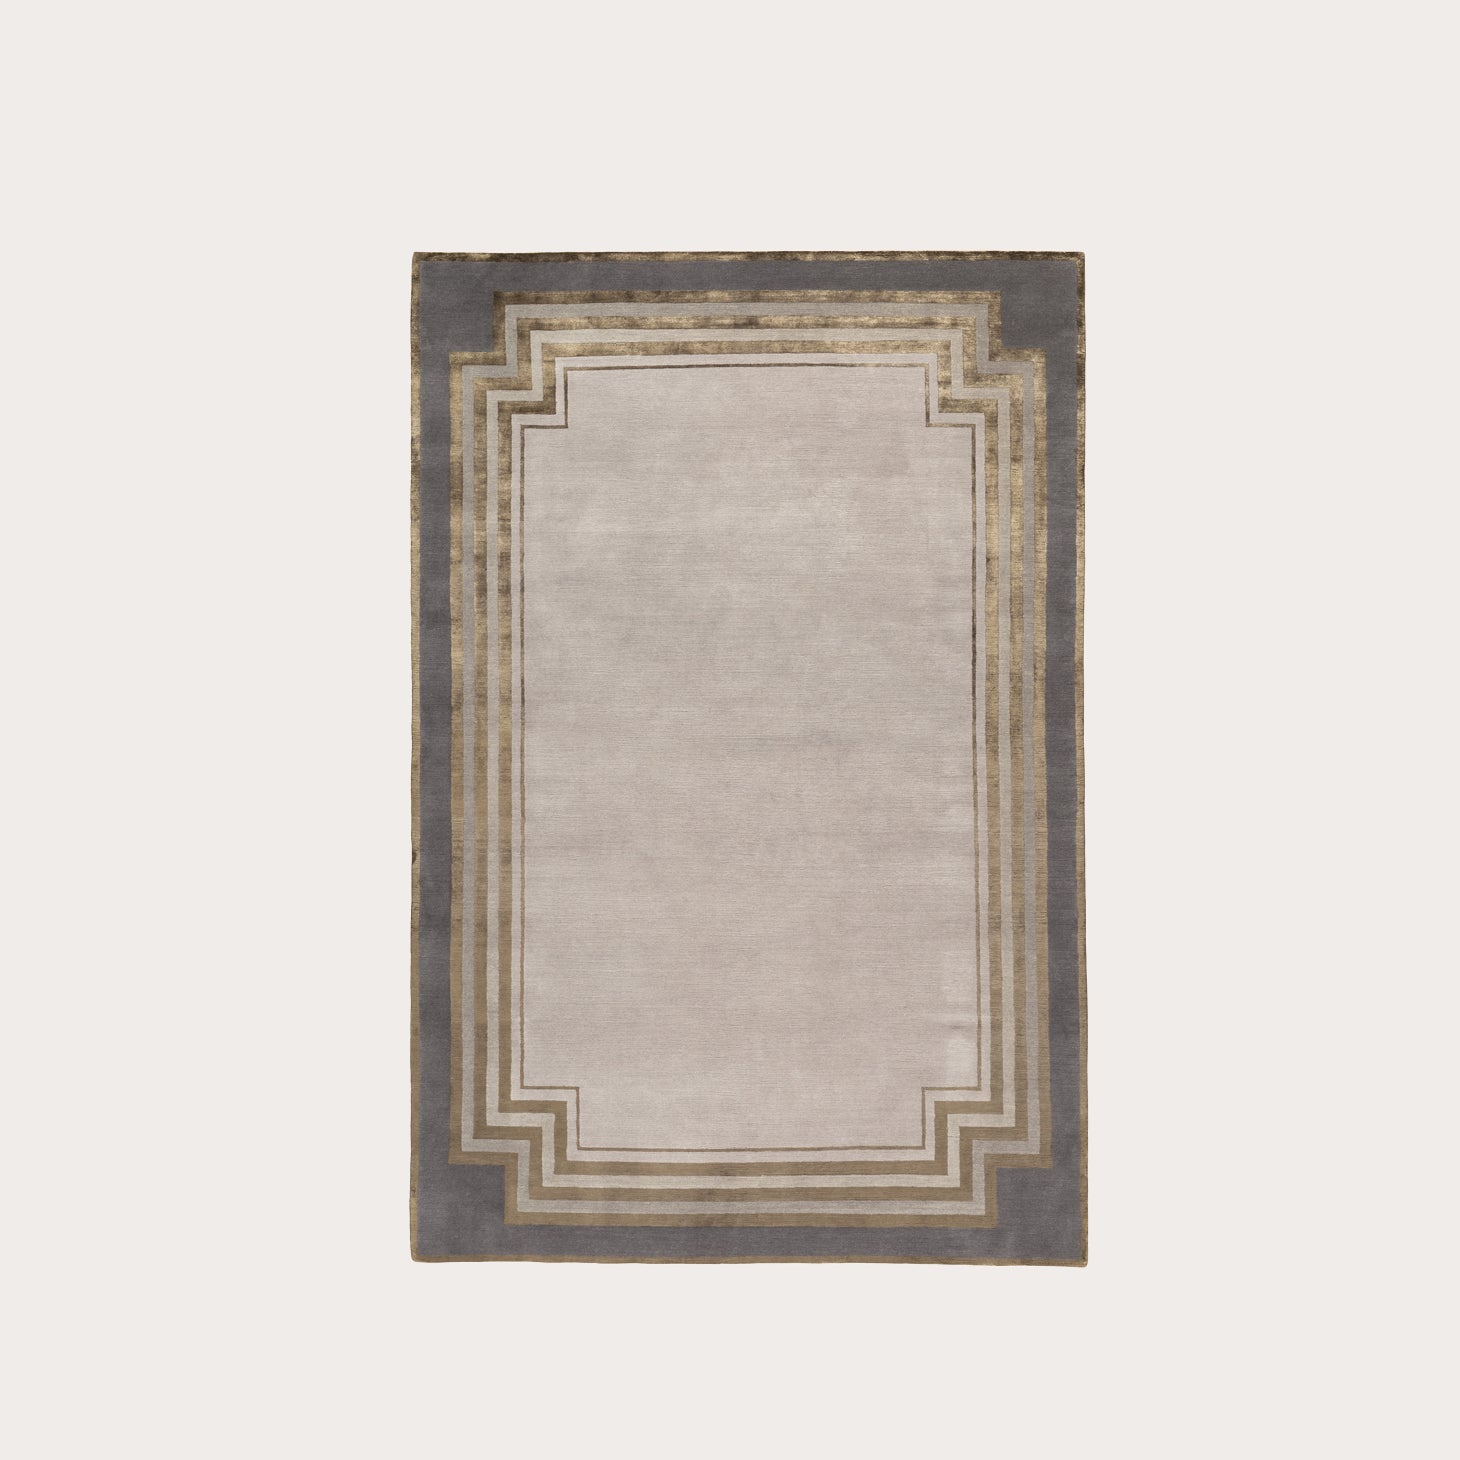 Deco Border Floor Coverings Tim Gosling Designer Furniture Sku: 391-150-11262